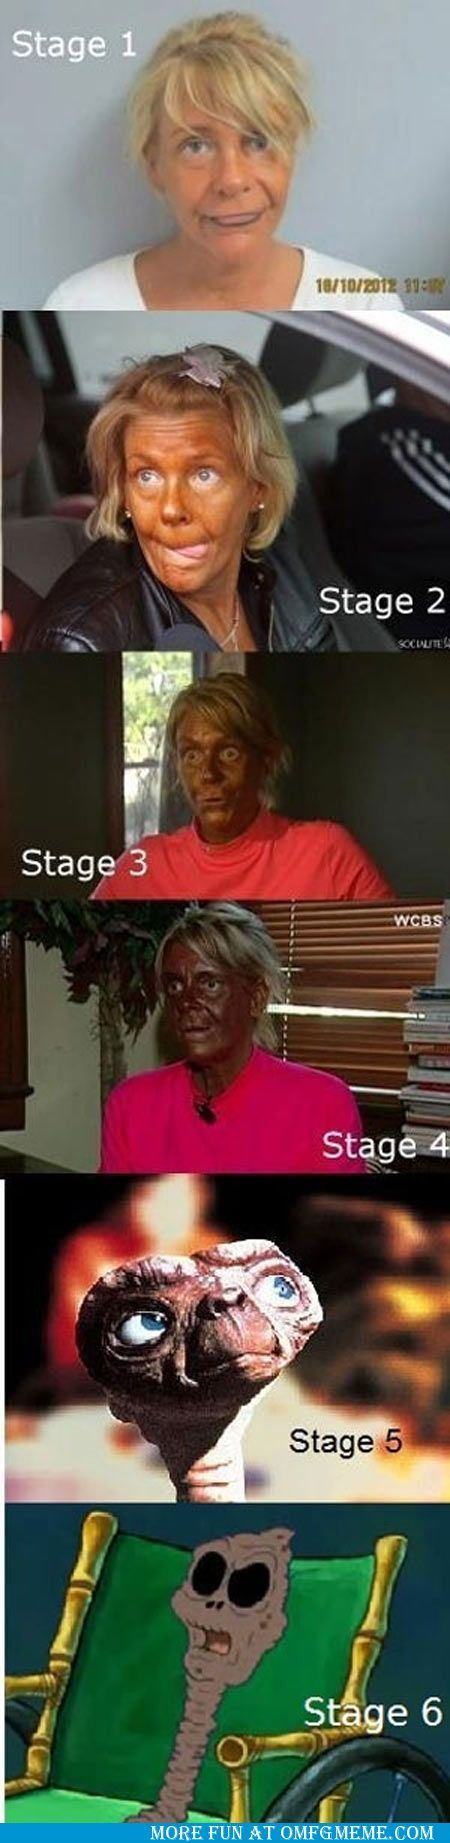 6 Stages Of Tanning funny pictures meme jokes My nieces and I were discussing this last week. Yikes. This is why you should not use tanning beds. Get some natural vitamin d.